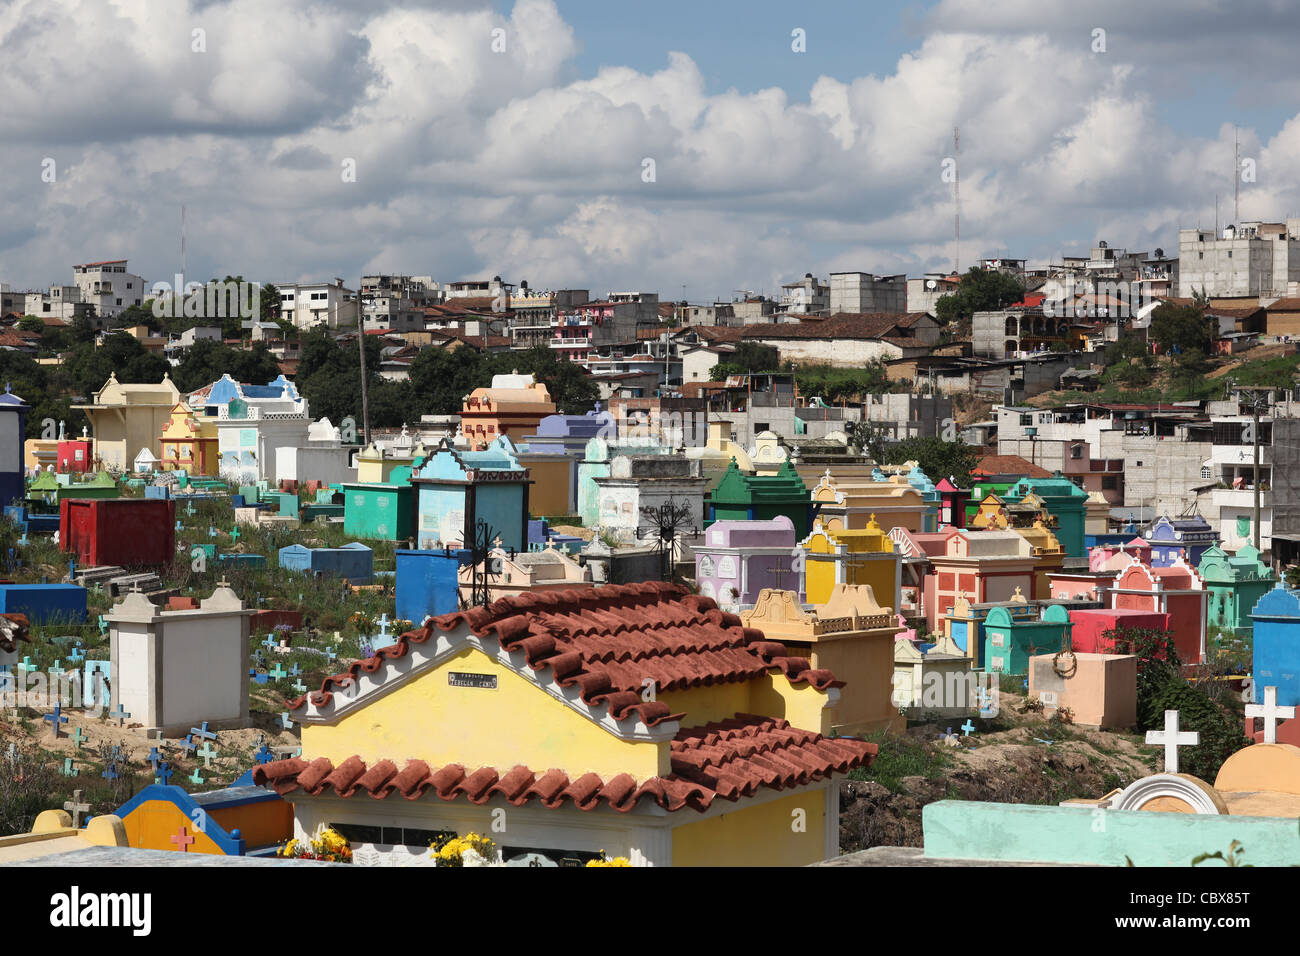 Colourful Cemetary near Chichicastenango, Guatemala - Stock Image